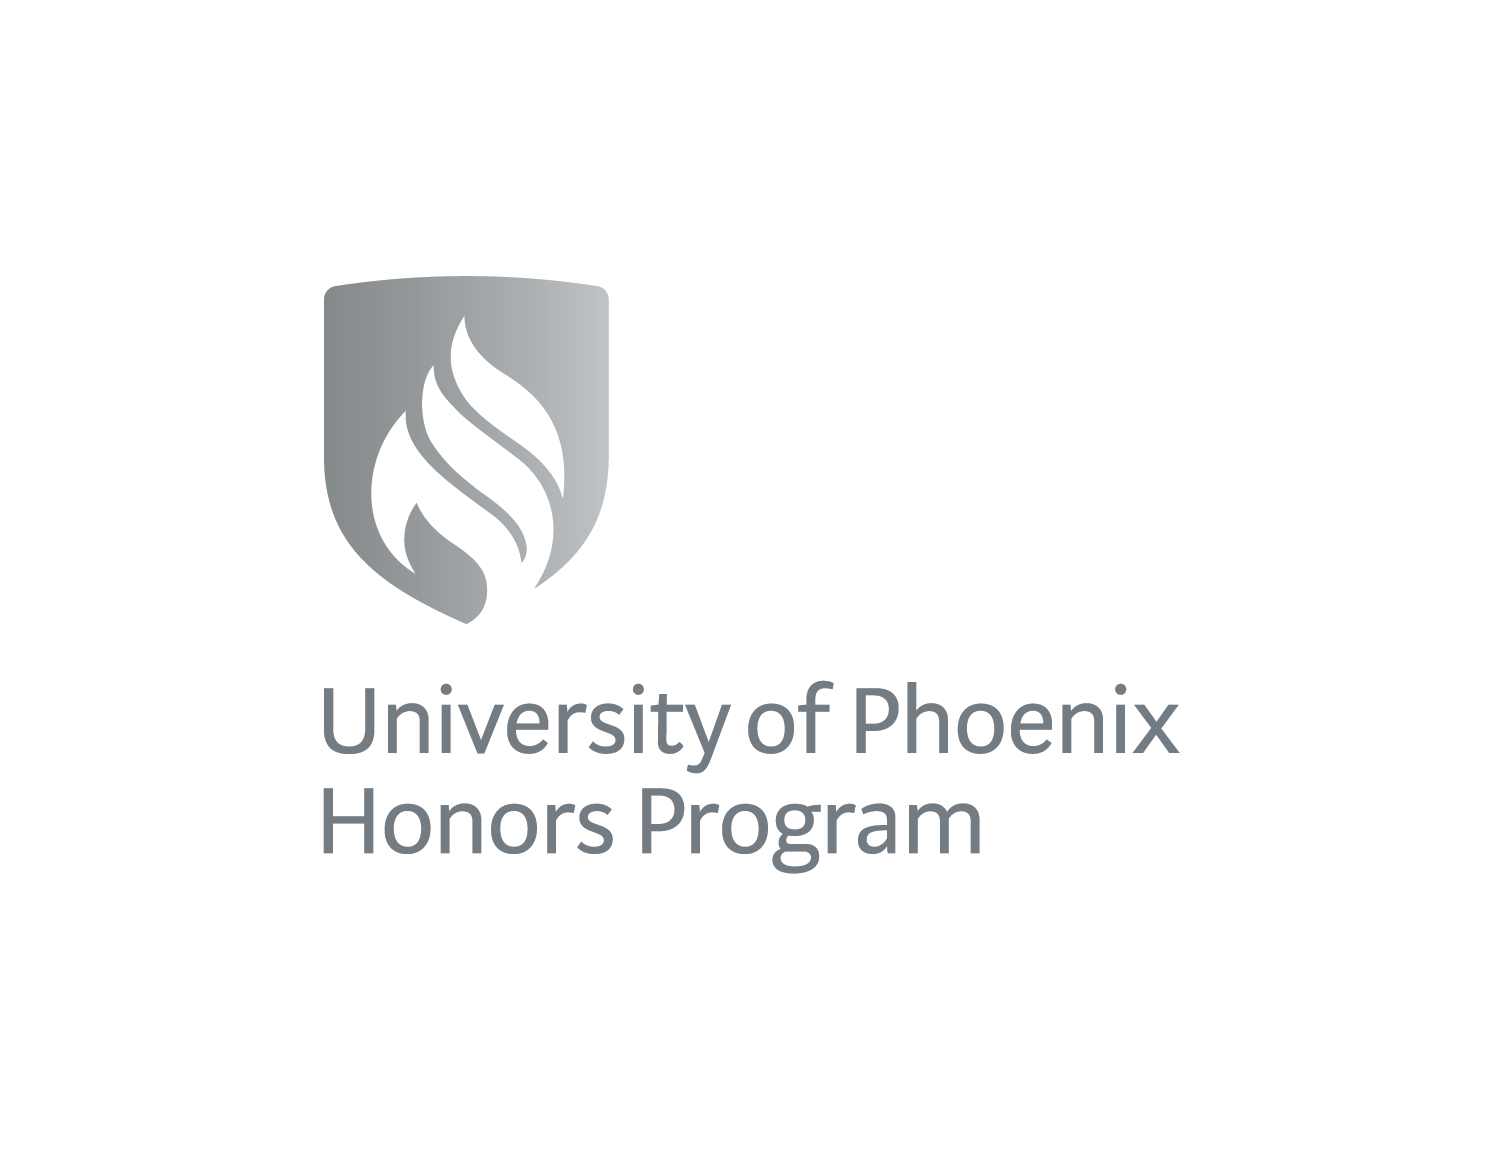 university of phoenix honors program